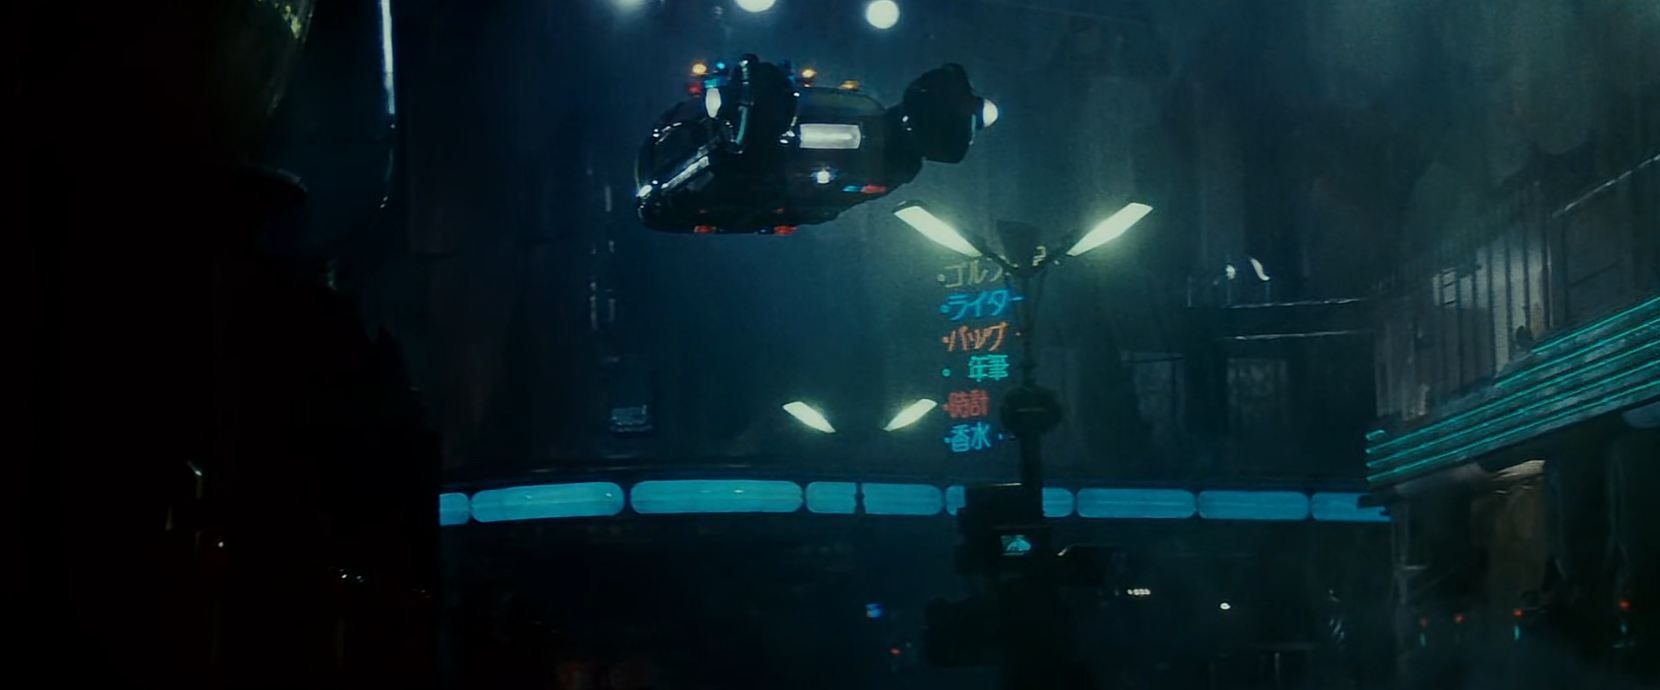 blade runner shots google search shots runners blade runner